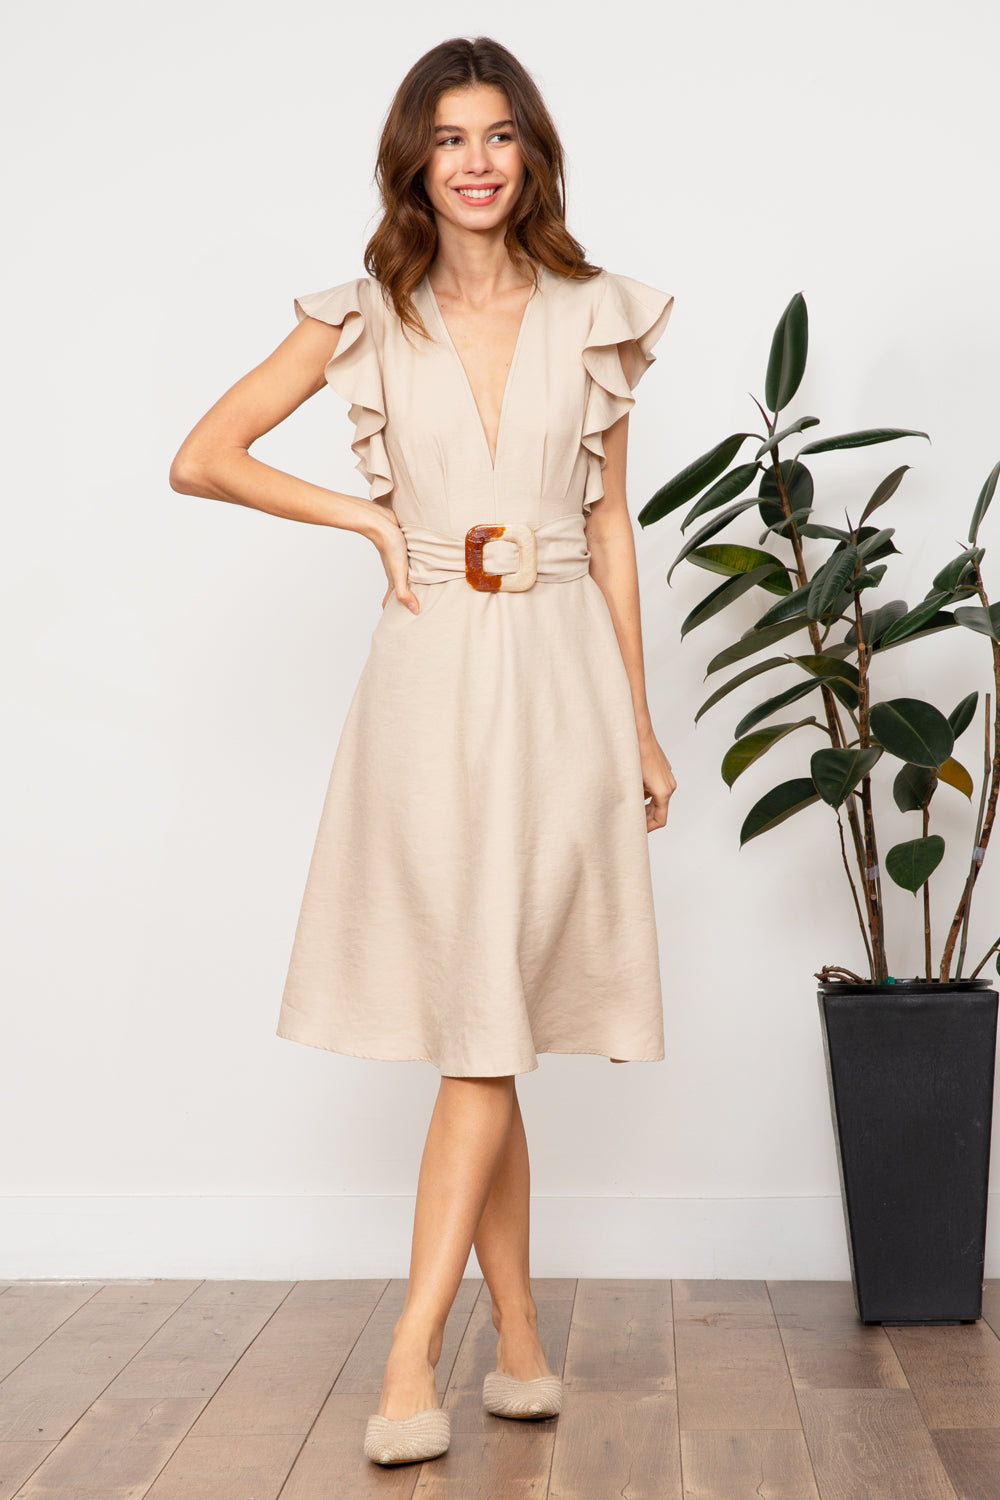 LUCY PARIS - Celeste Belted Dress